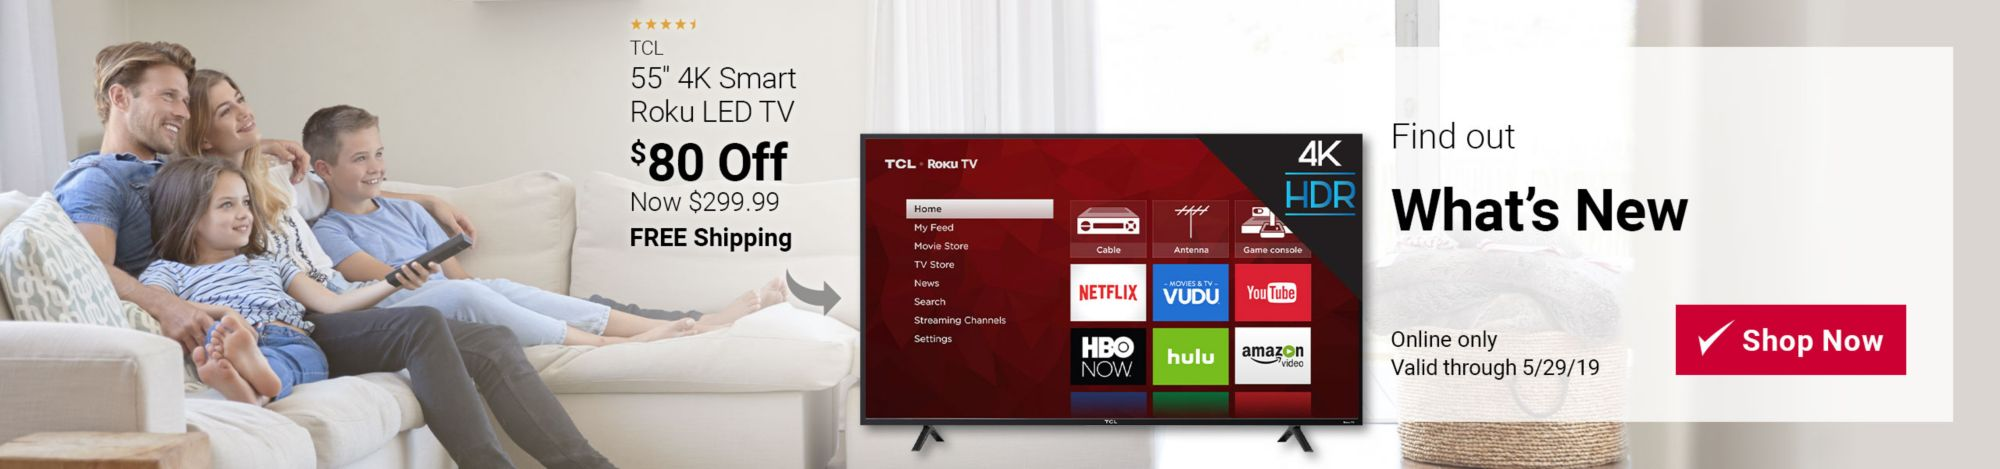 Featured deal: $80 off TCL 55 inch 4K Smart Roku LED TV, rated at 4 and a half stars. Now $299.99 with free shipping. Online only through May 29. Click here to shop now.